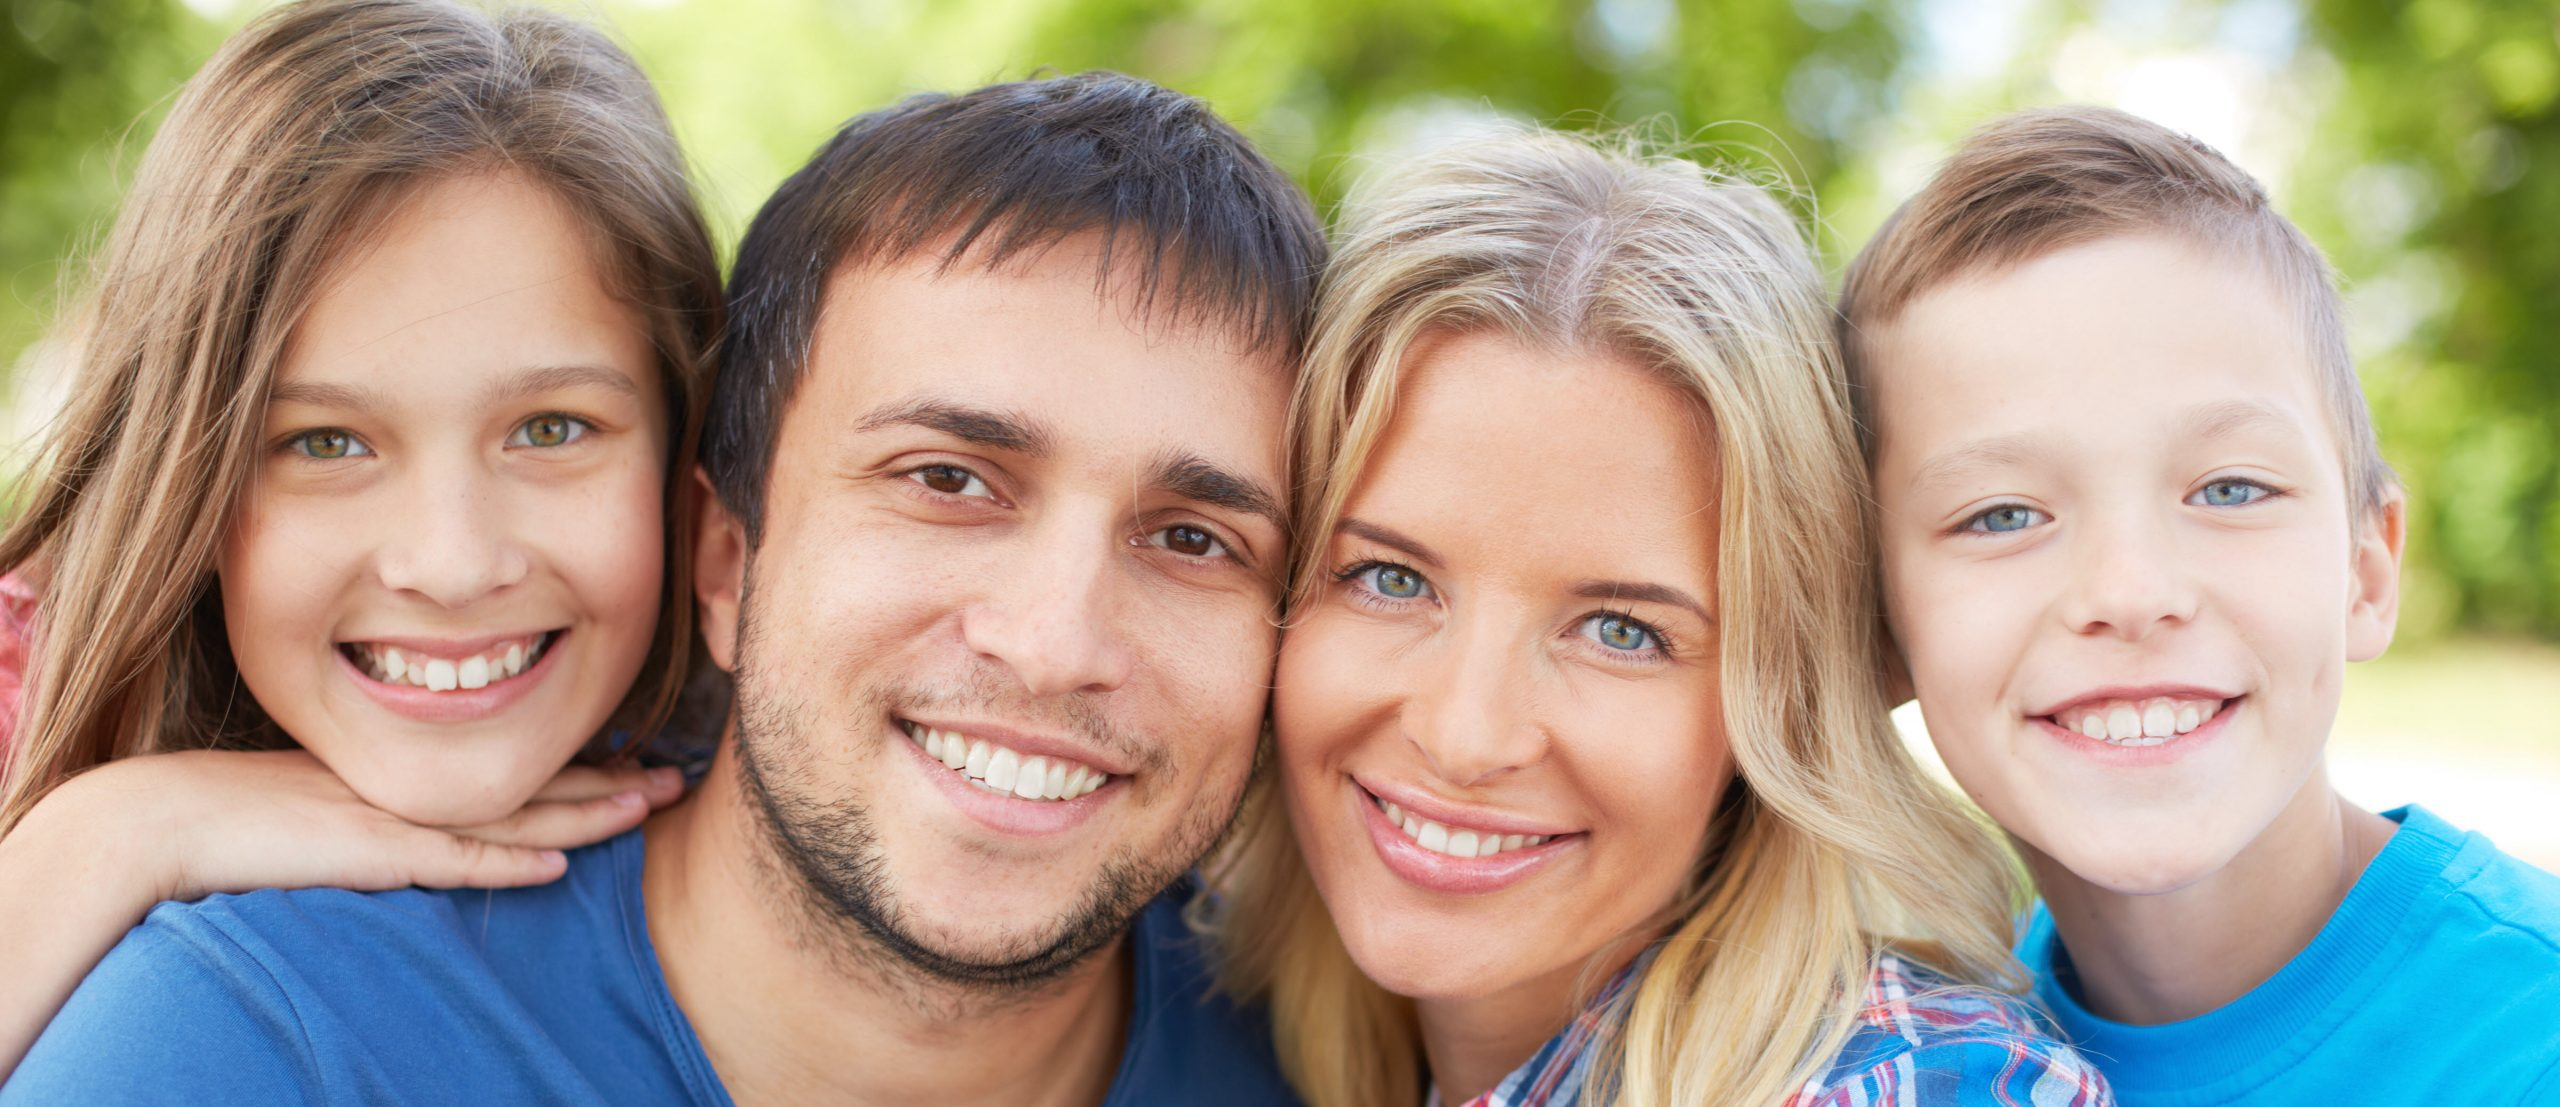 capital dental care in Raleigh, NC